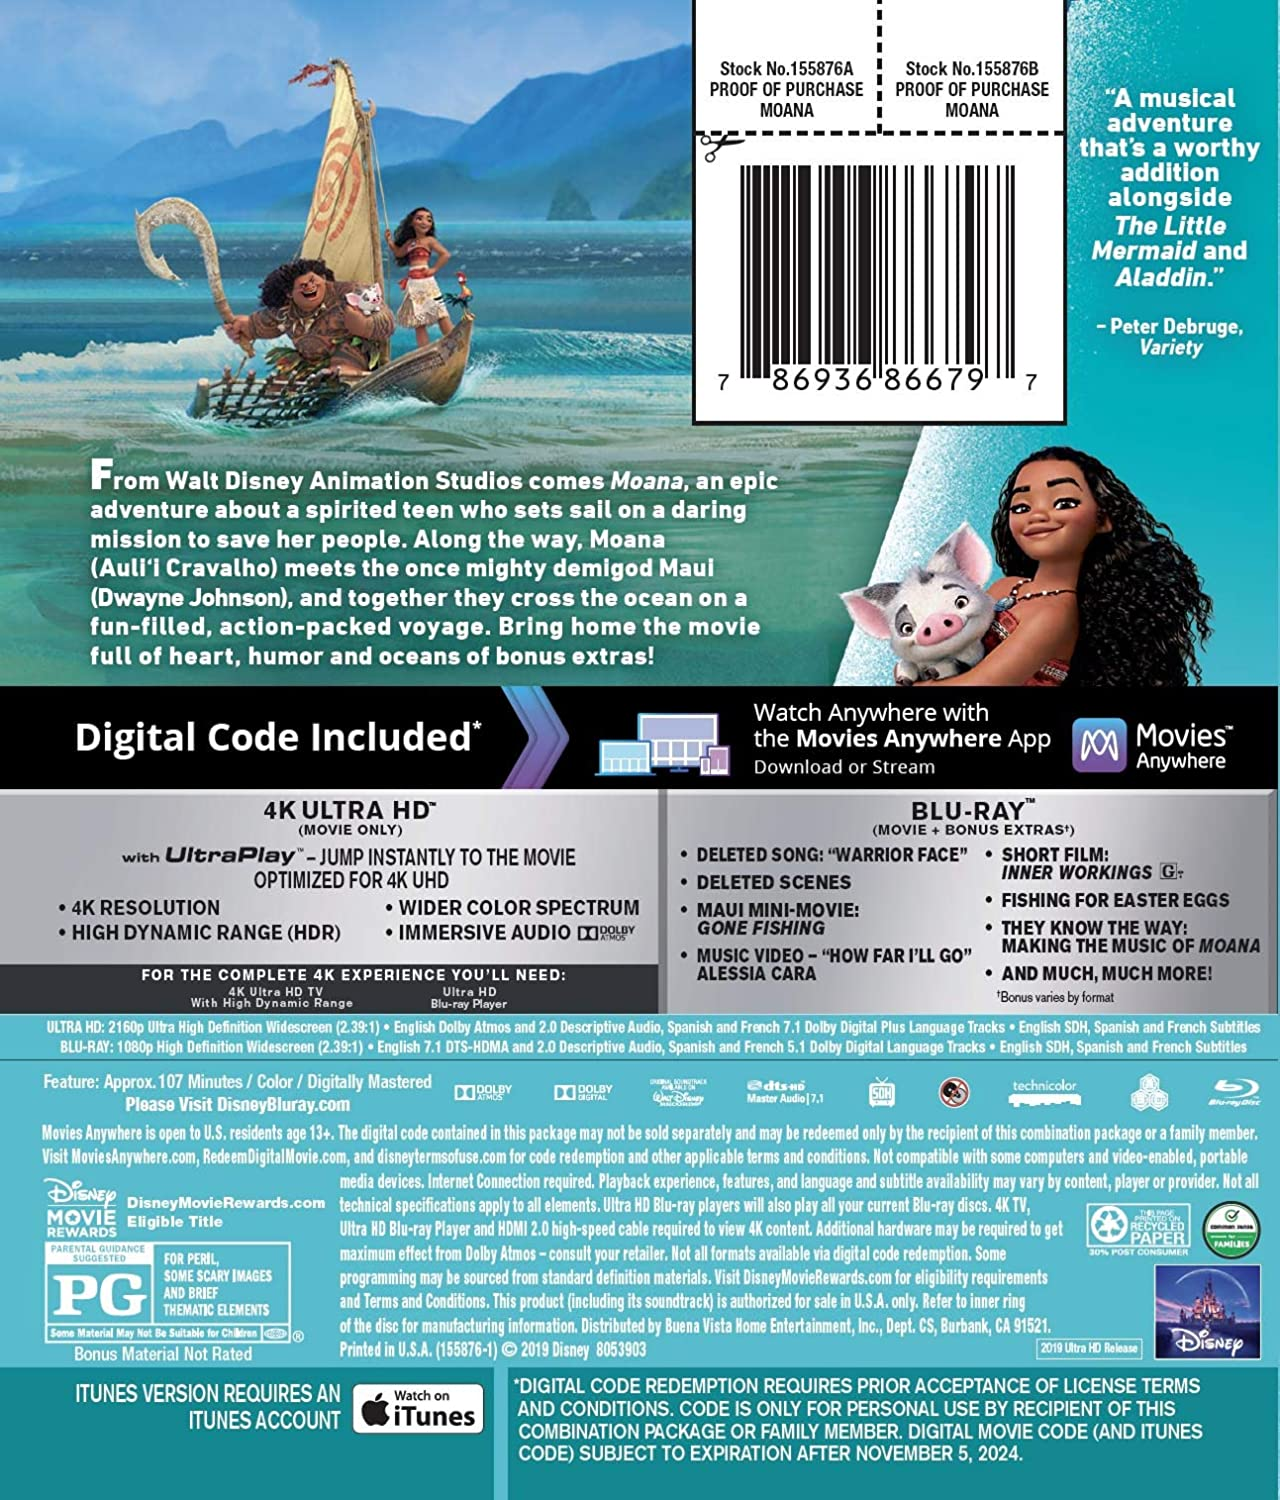 Rachel House Dwayne Johnson Moana Blu-Ray Aulii Cravalho